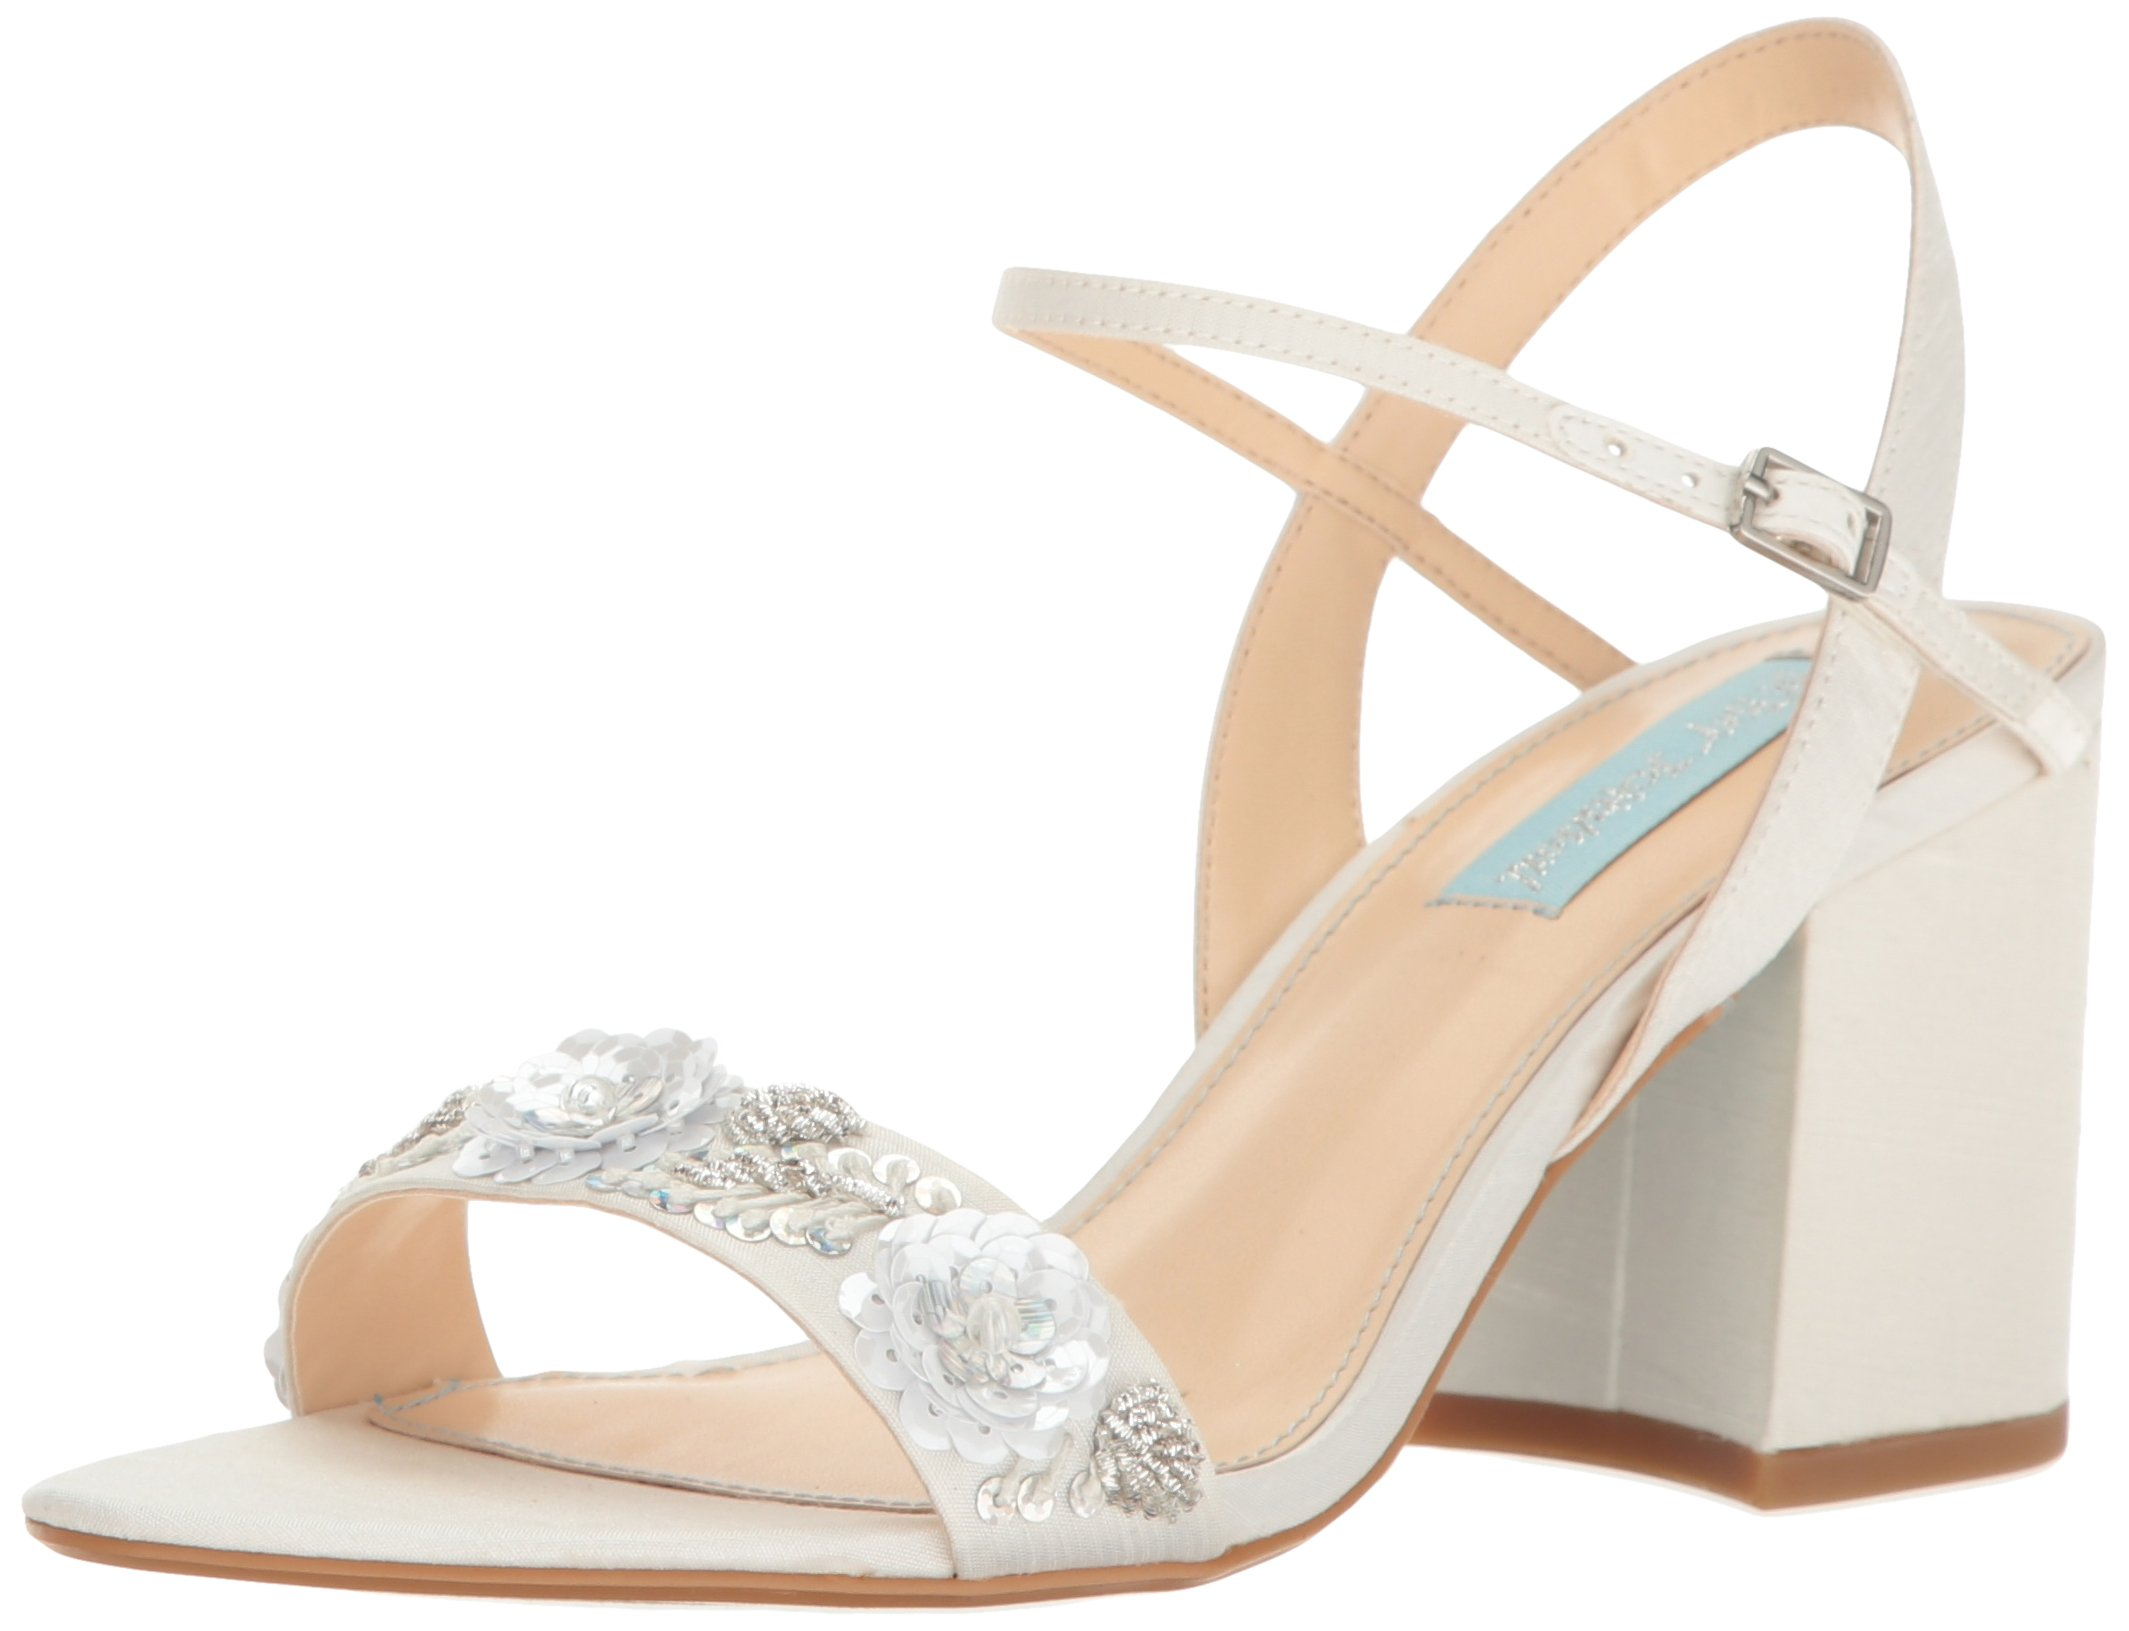 Blue by Betsey Johnson Women's Sb-Brett Dress Sandal, Ivory, 8.5 M US